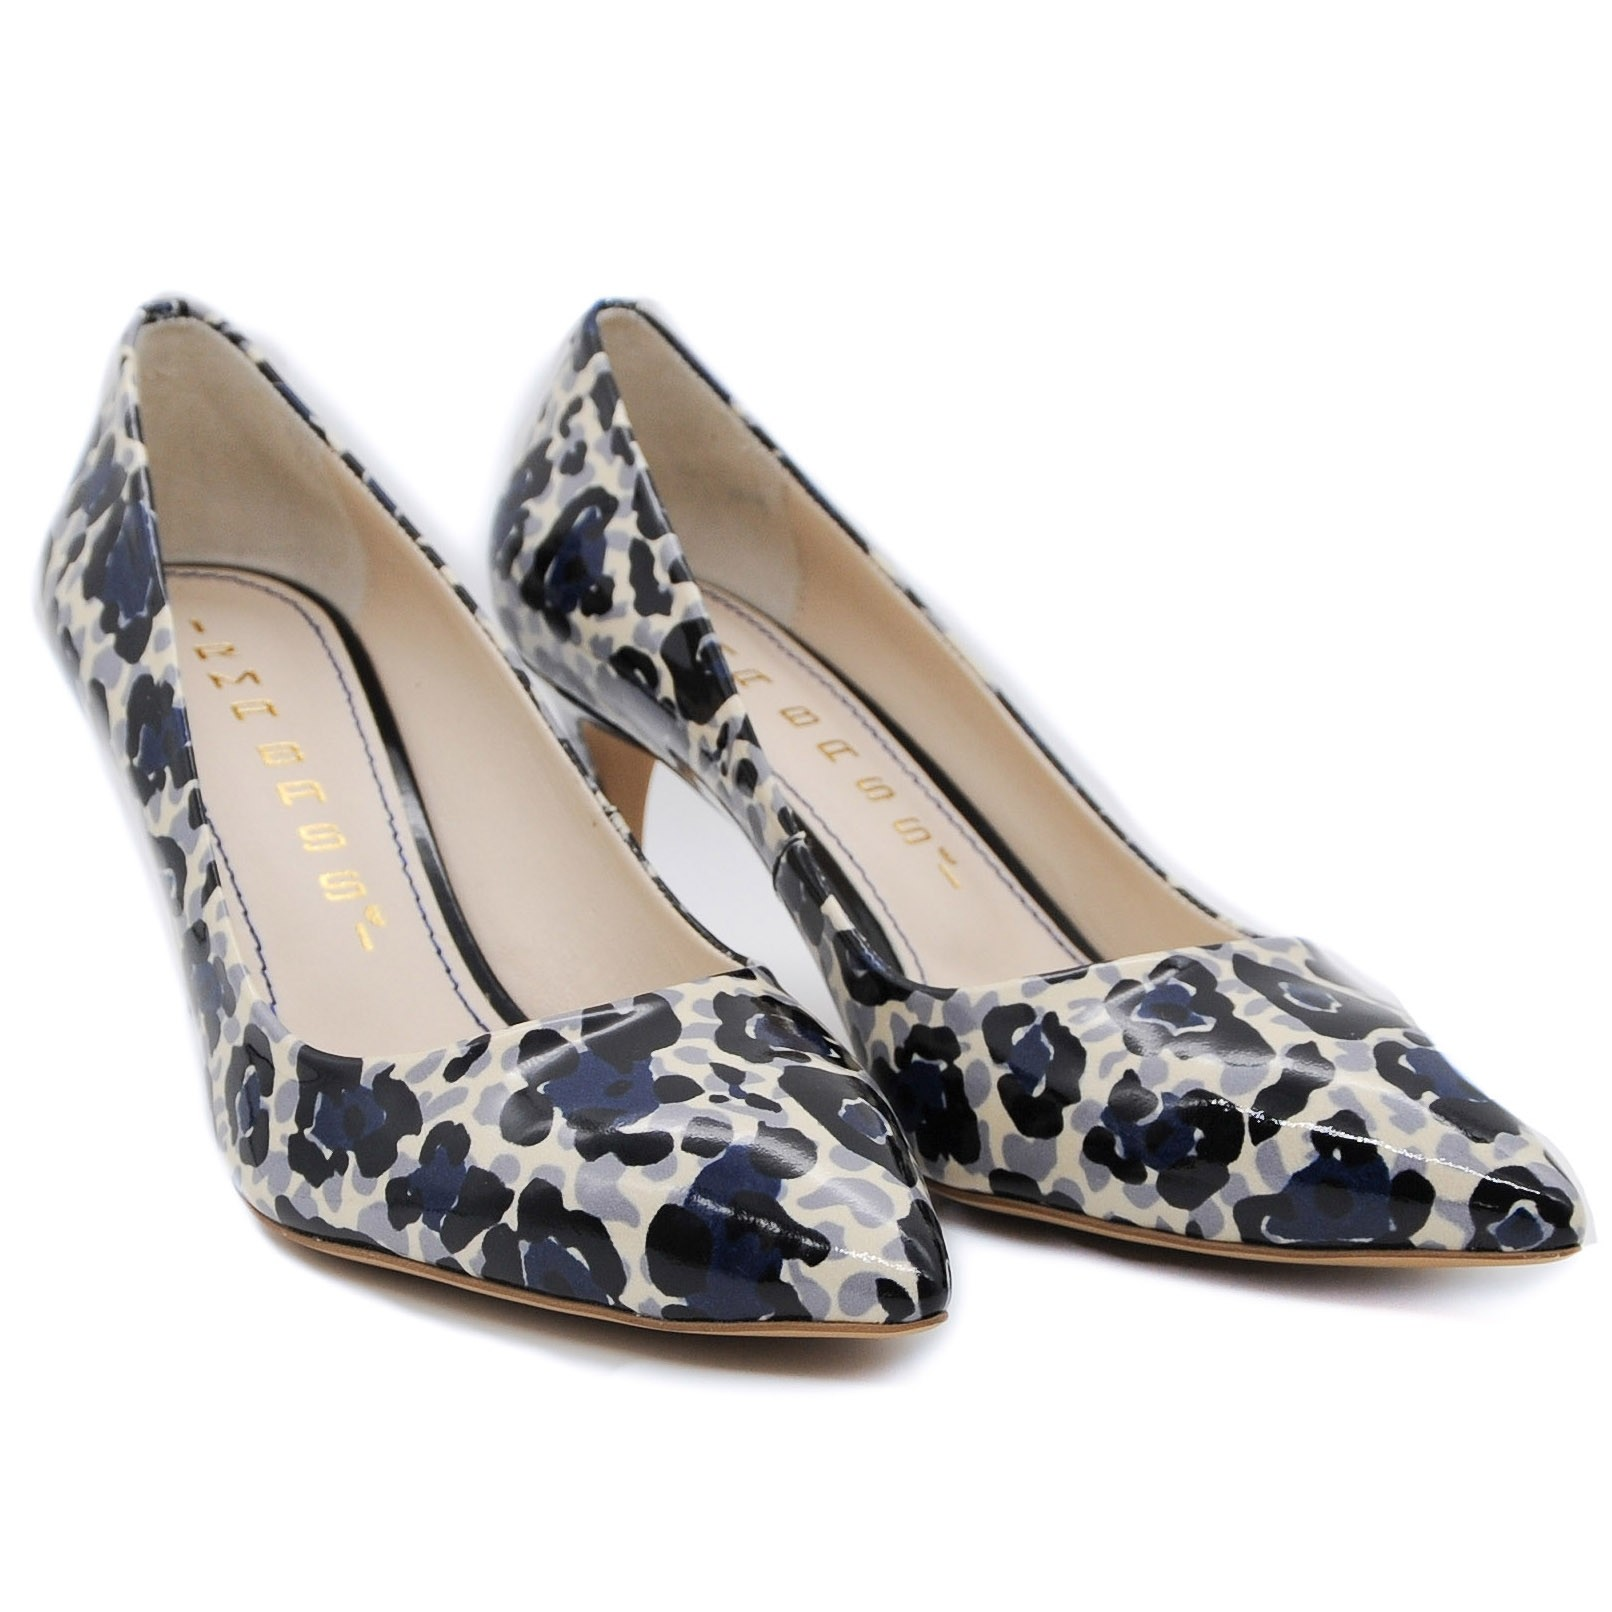 Womens Medium Heel Attractive Patterned Fashion Court Shoe with Pointed Toe